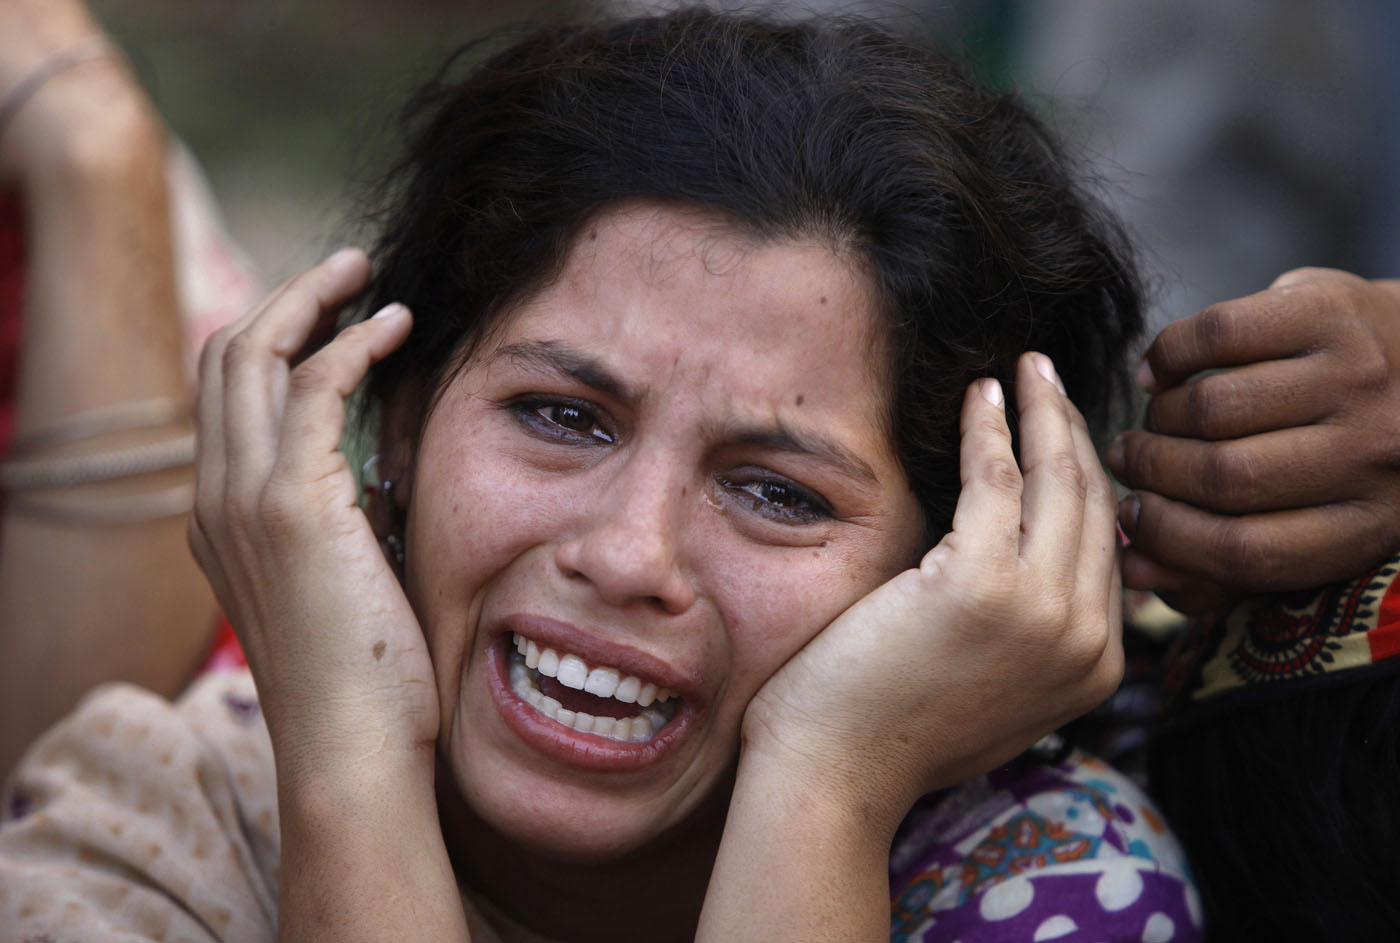 Independence rally in Barcelona, landslide in Pakistan, Malaysia Airlines Flight 17 | Oct. 13